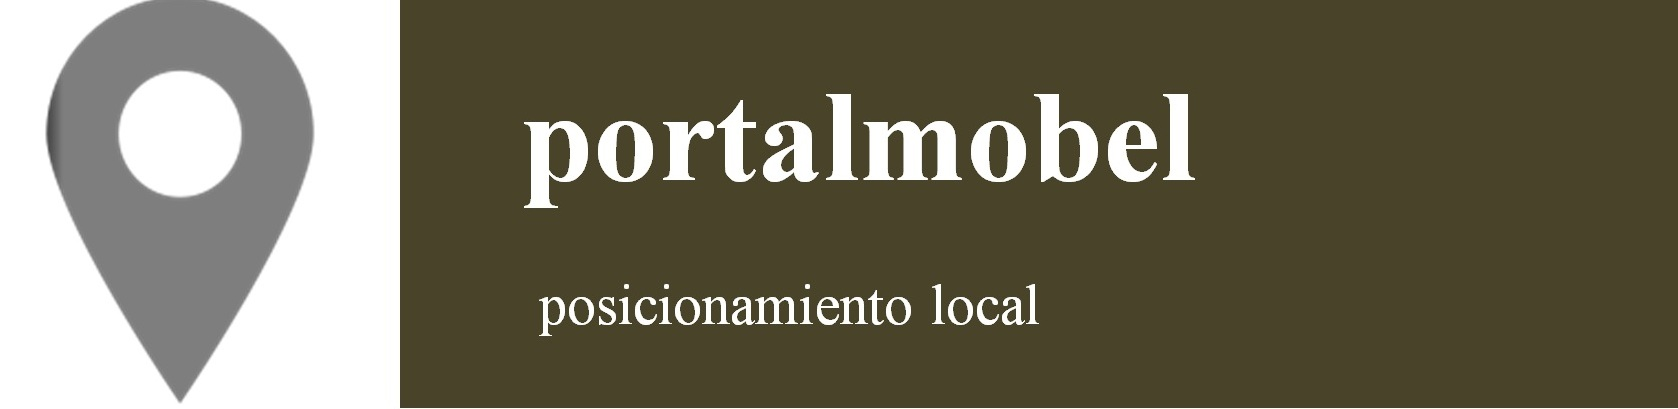 posicionamiento local portalmobel